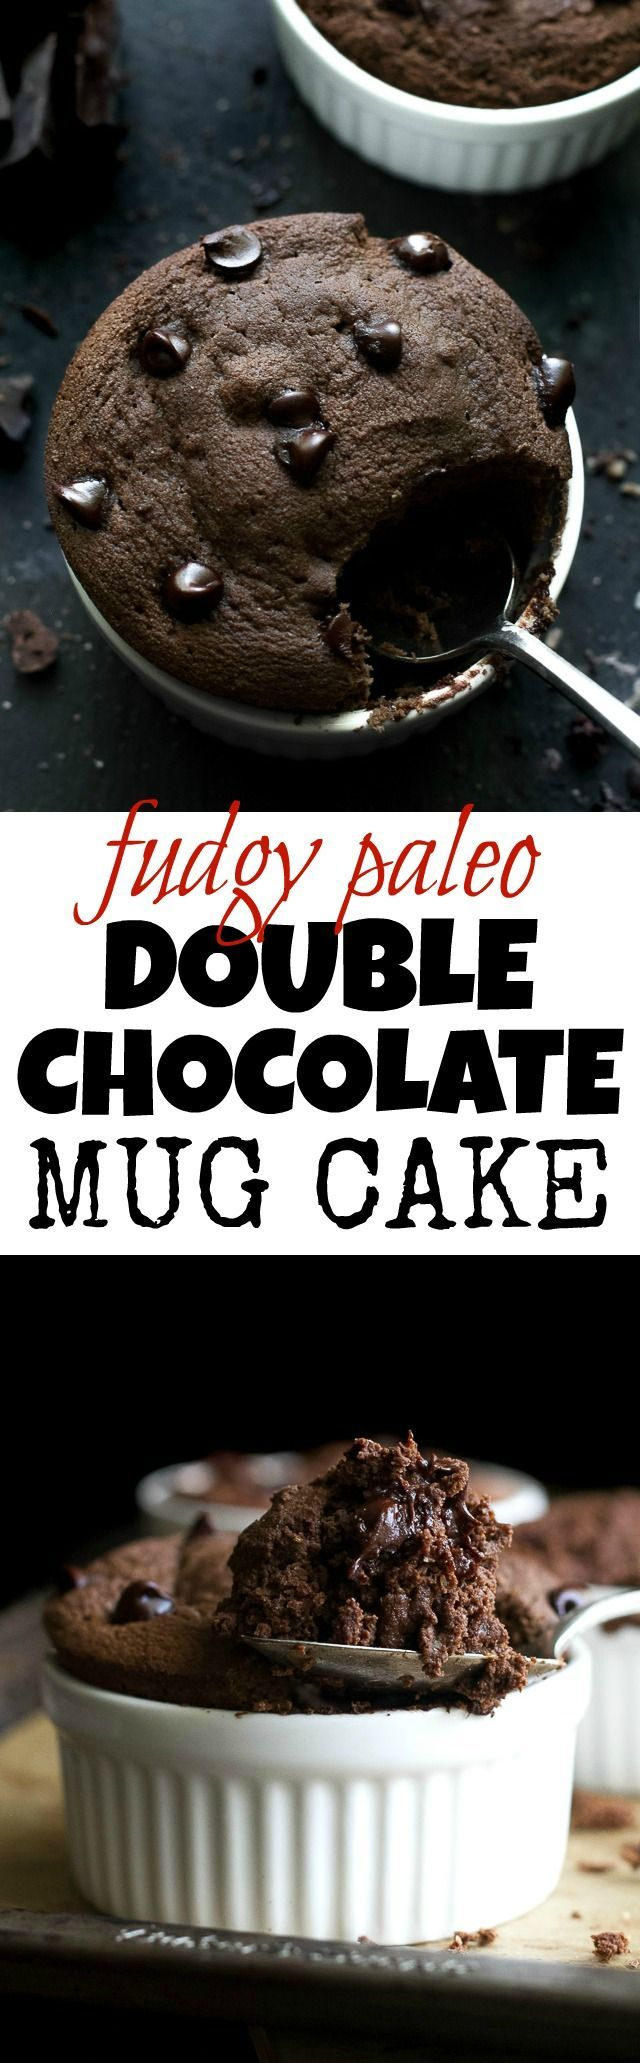 Fudgy Double Chocolate Mug Cake - satisfy those chocolate cravings in a healthy way with this paleo mug cake! Ready in 5 minutes, it makes for a delicious grain-free treat that everyone will love  runningwithspoons.com